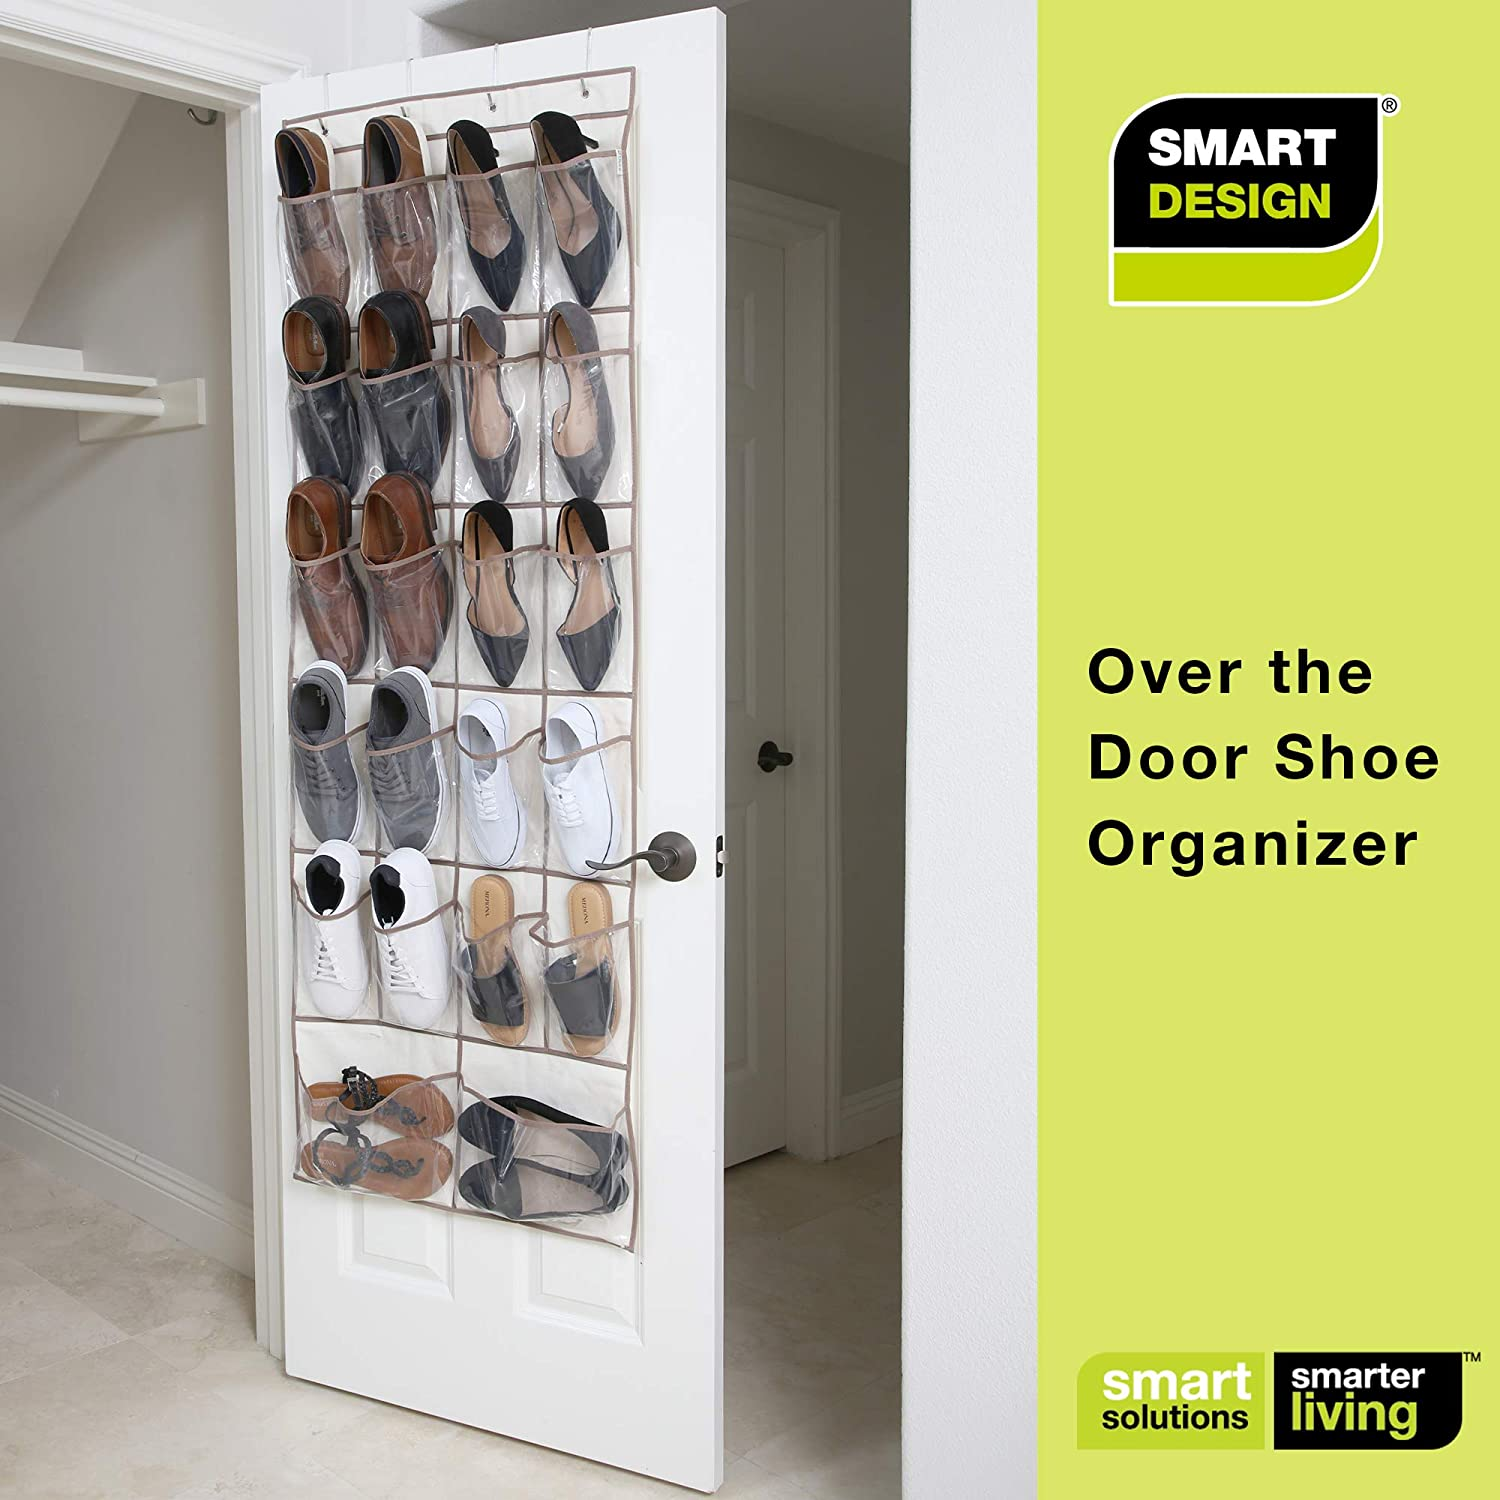 Misc For Shoes Ventilair Mesh Fabric Home Organization 21 X 73 Inch Item Smart Design Over The Door Organizer W 42 Pockets W Elastic Trim Steel Hooks Toiletries Natural Canvas Over The